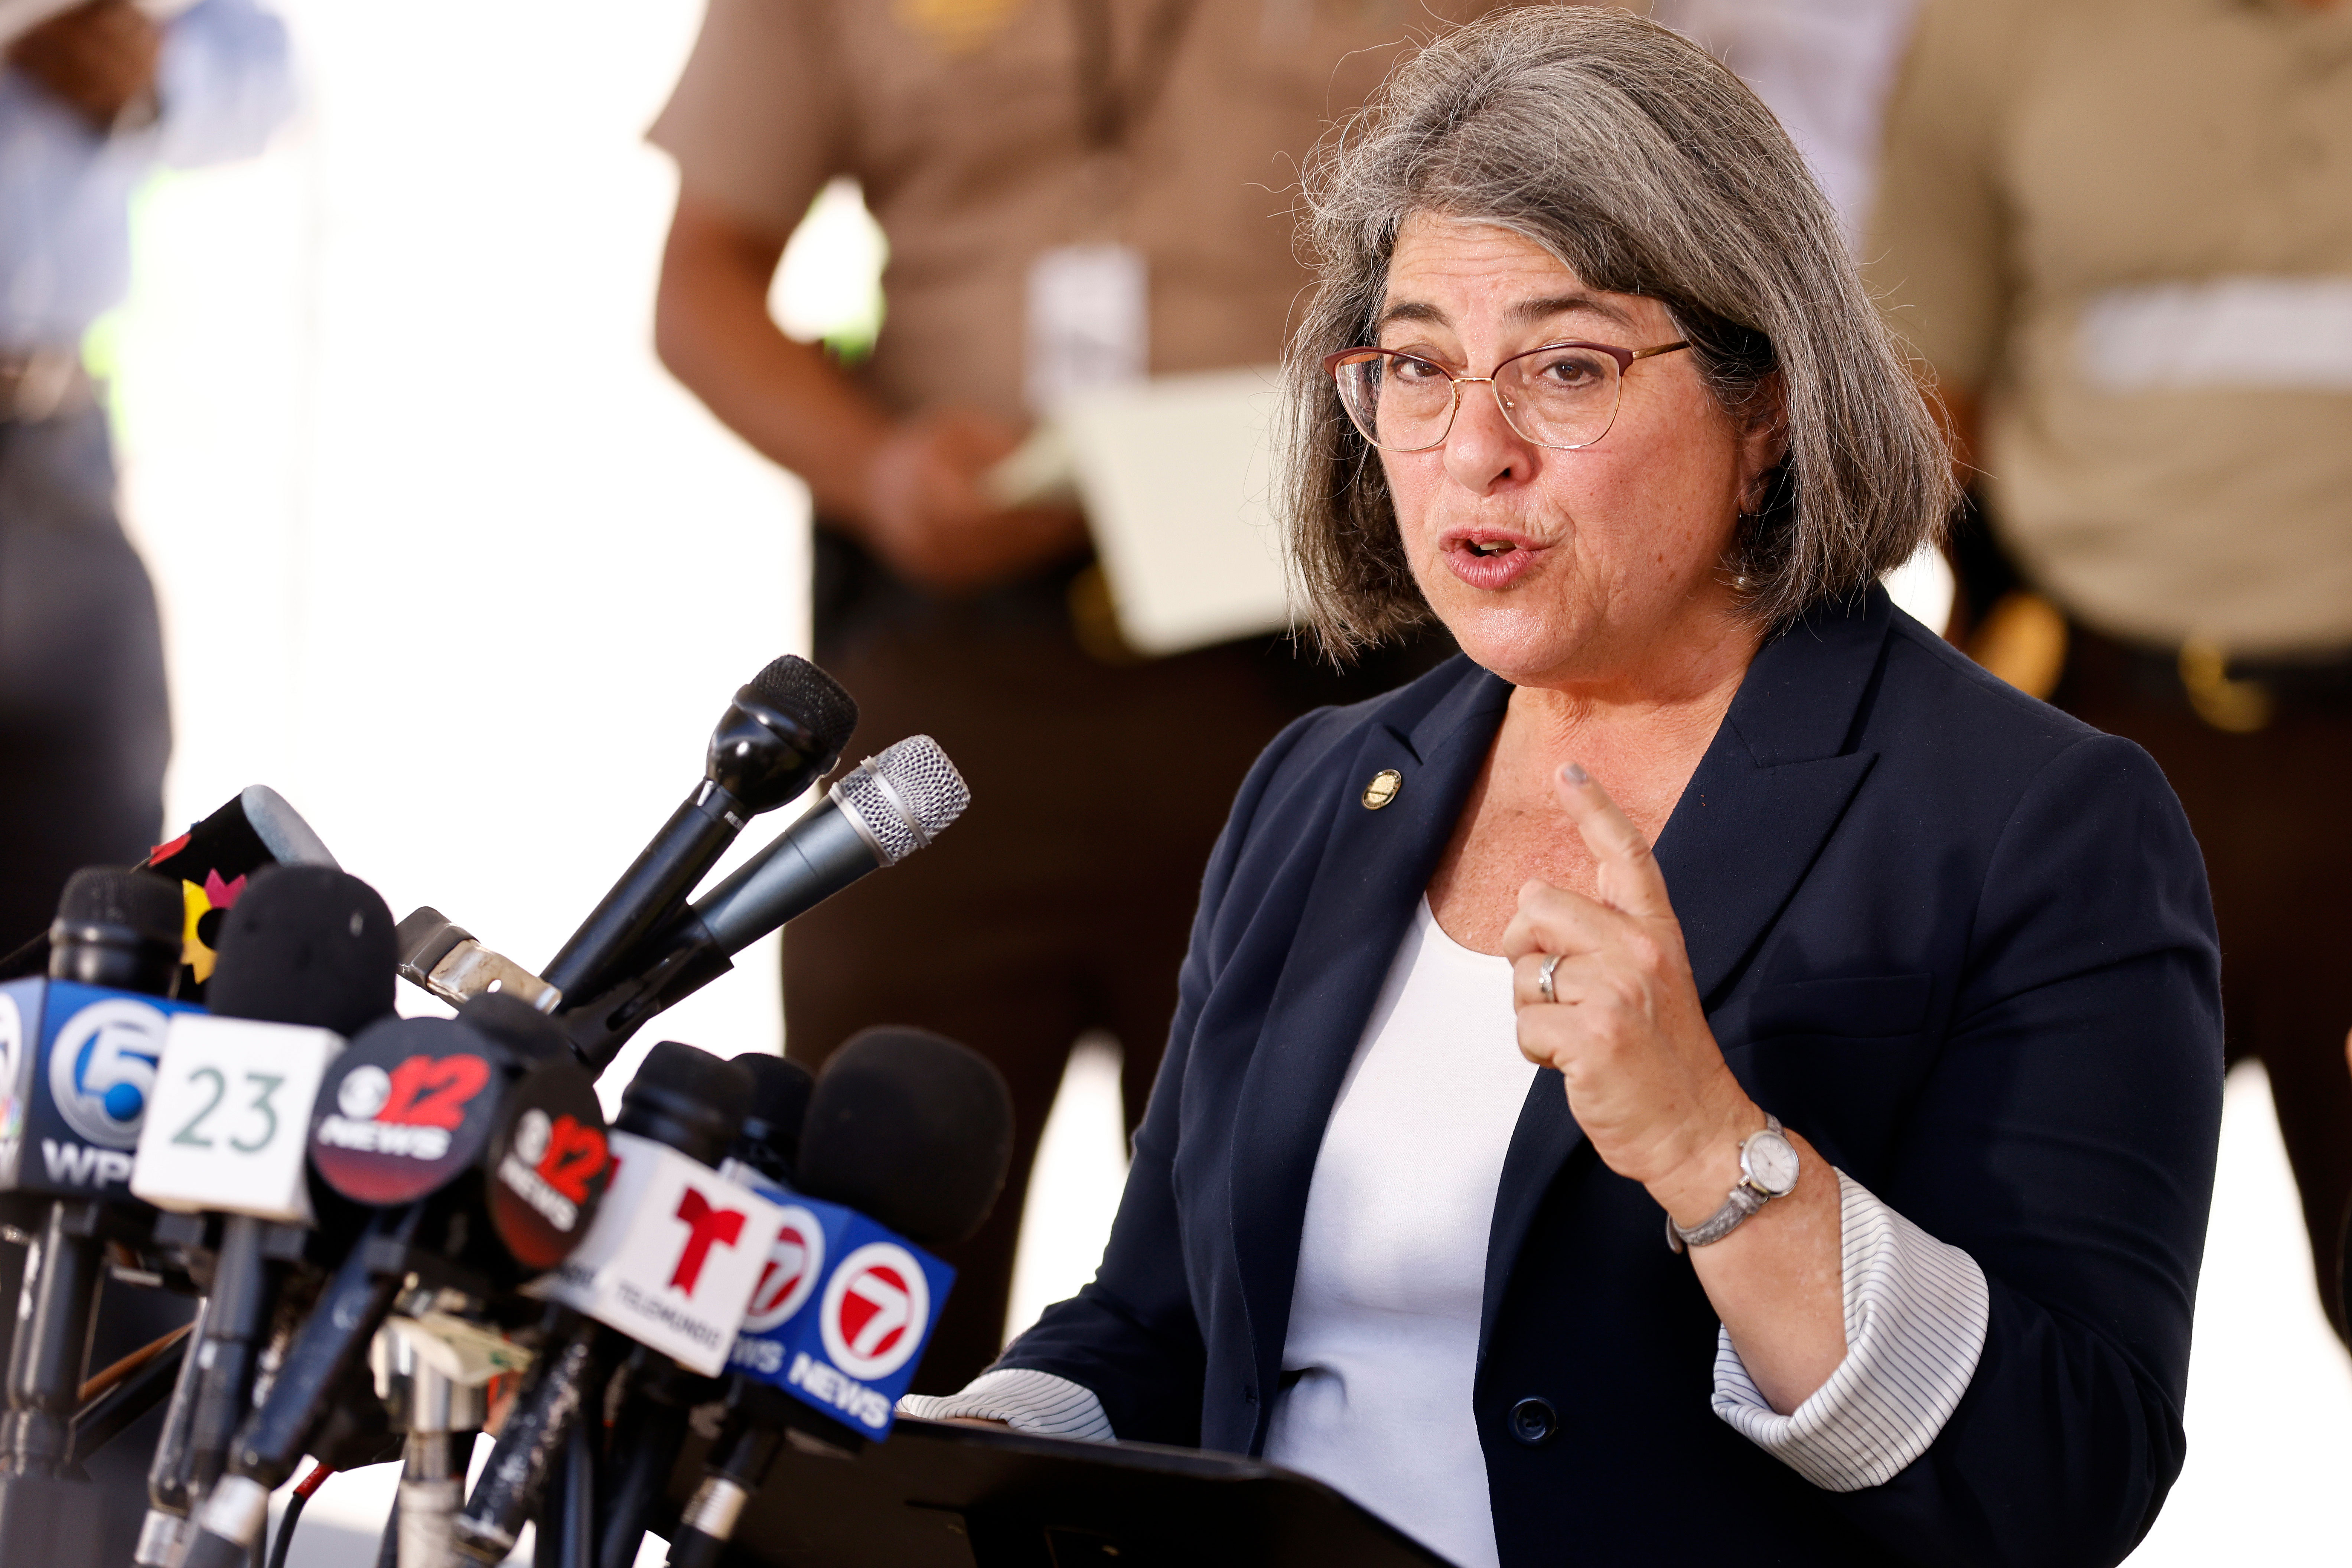 Miami-Dade County Mayor Daniella Levine Cava speaks at a press conference in Surfside, Florida, on July 3, 2021.